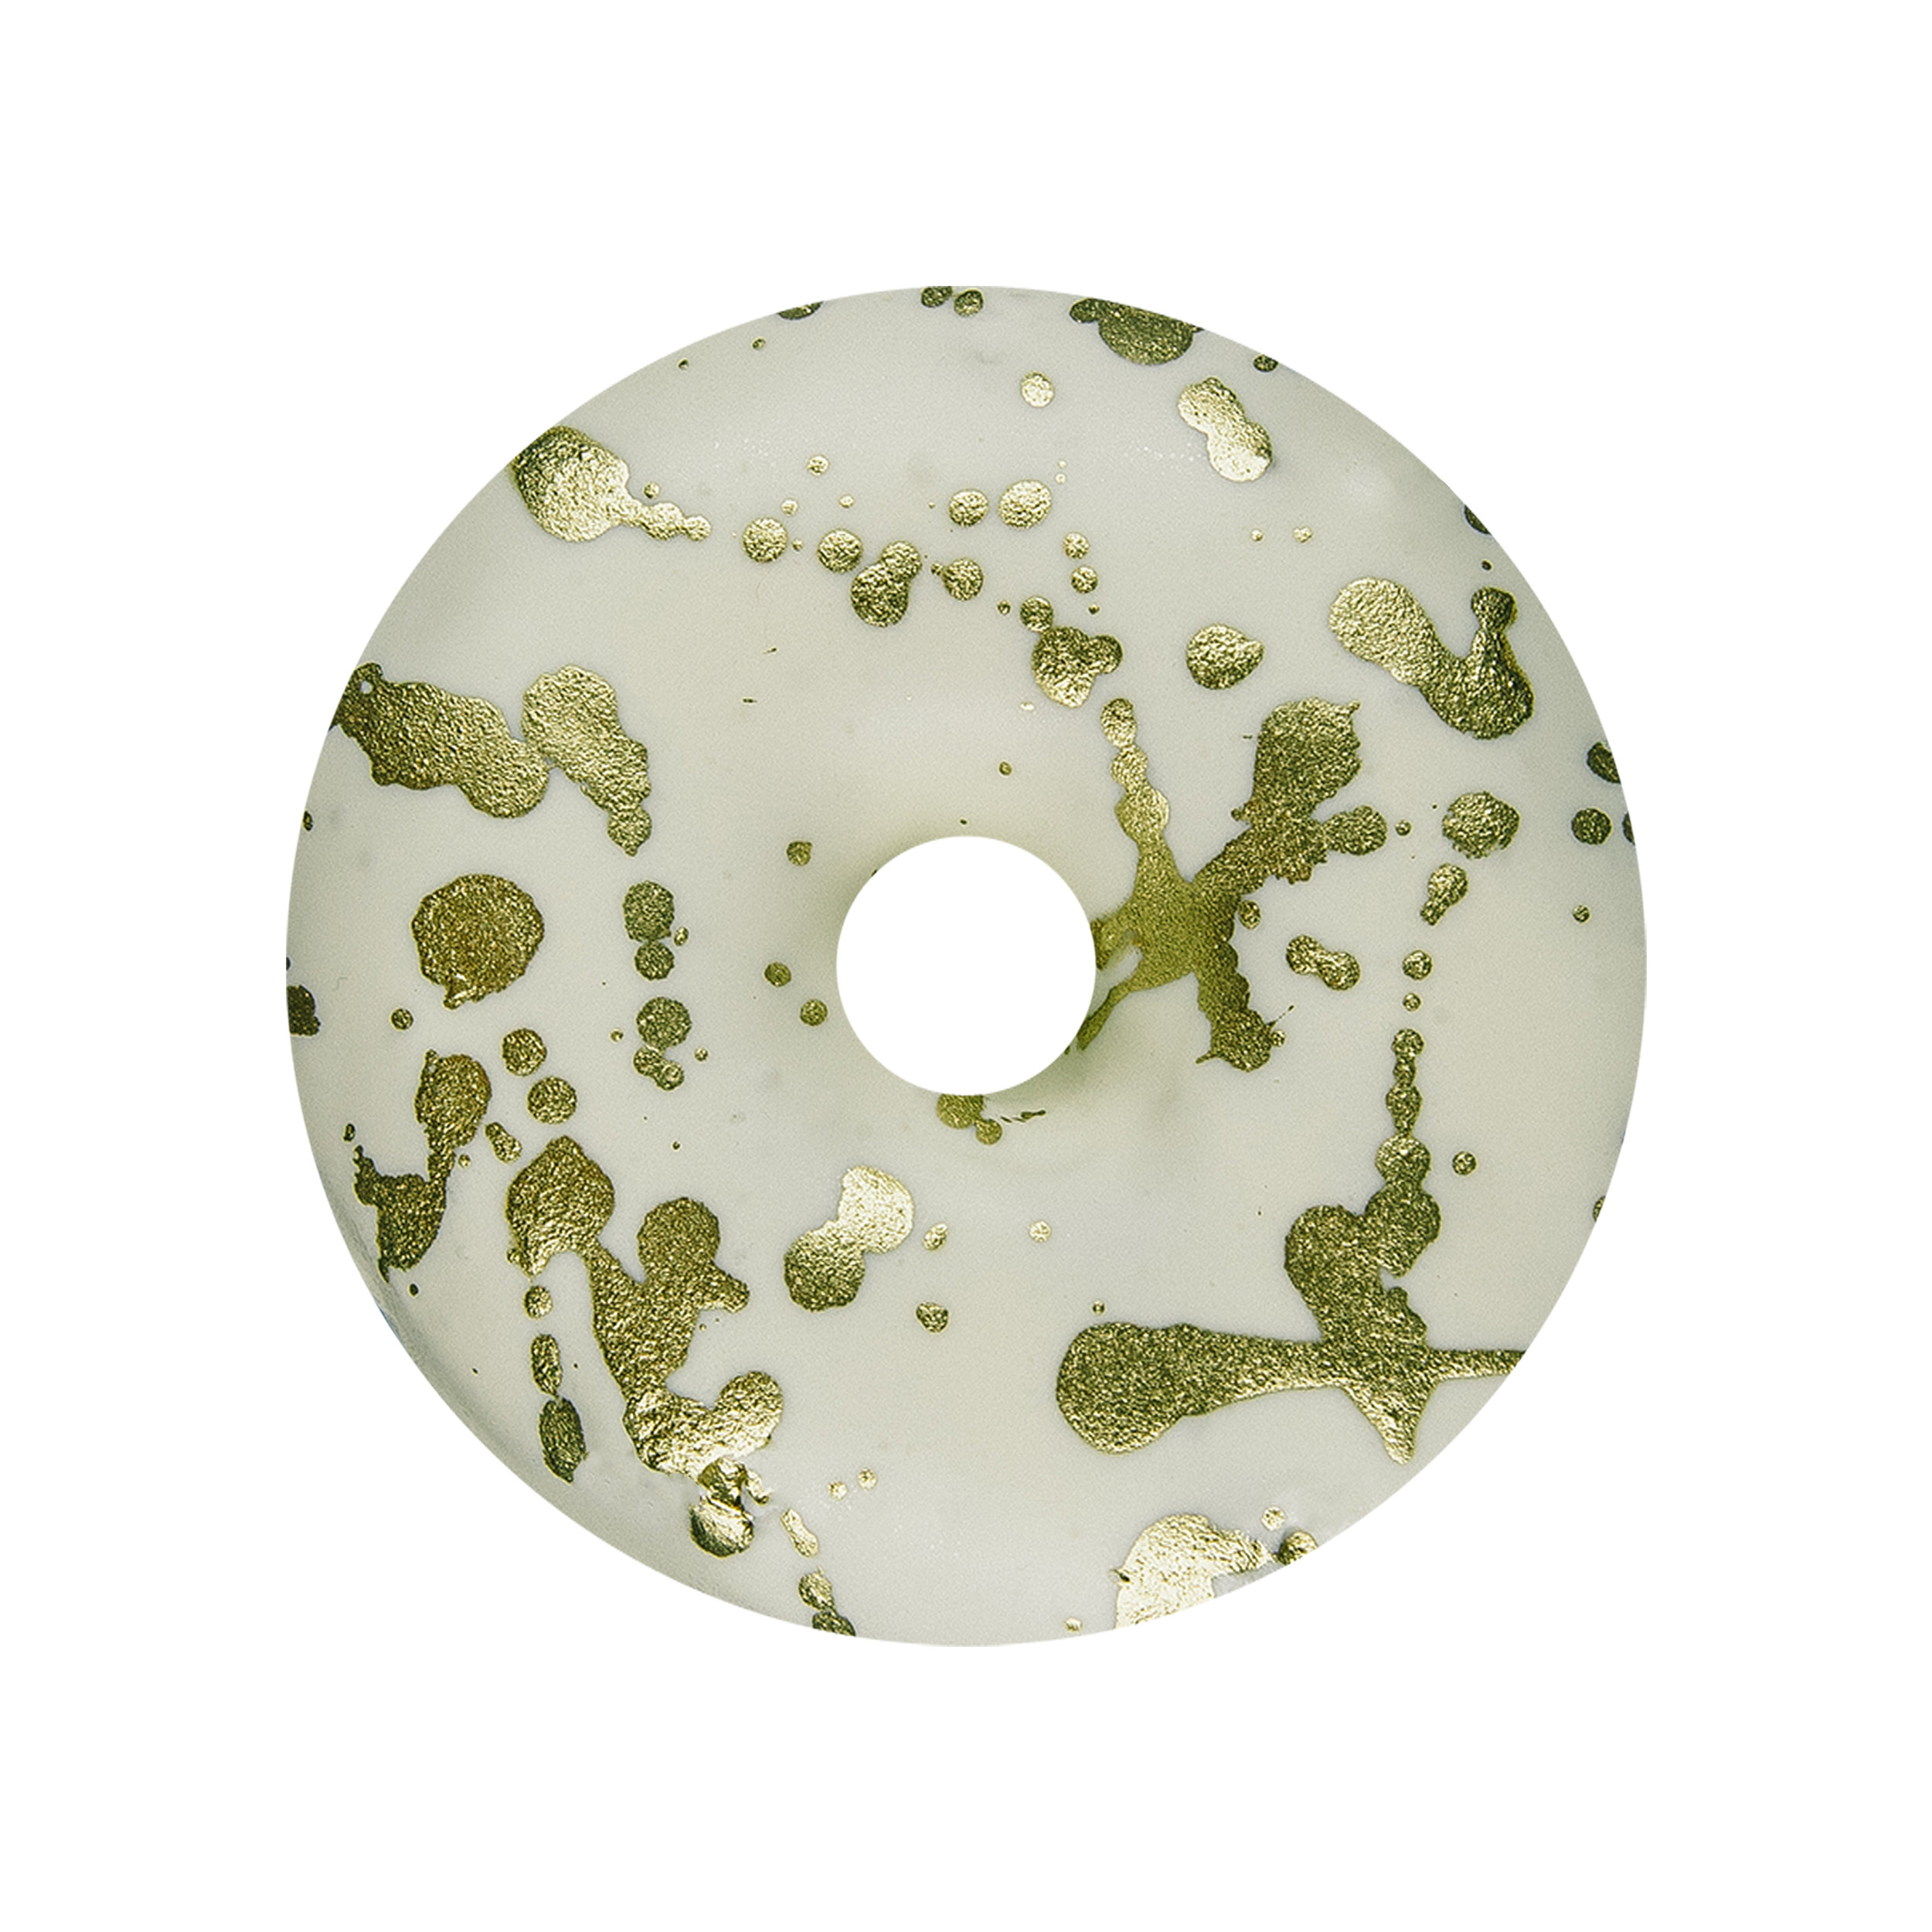 GOLD SPLATTER - WHITE CHOCOLATE GLAZE+ GOLD SPLATTER